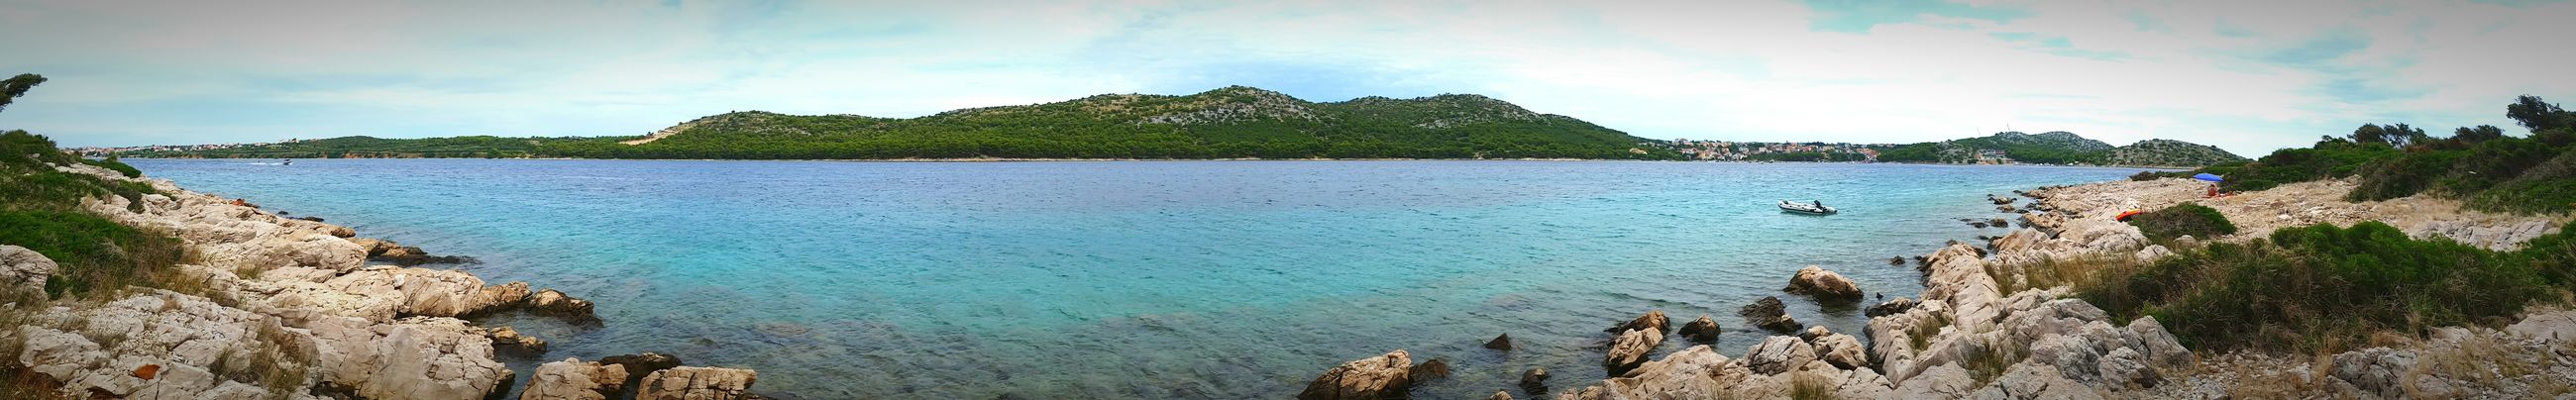 The trip to the island in Croatia Kroatien Beachphotography On The Beach Sea_collection Sea Side Water_collection MyWildLive Blue Beach Amazing Sea